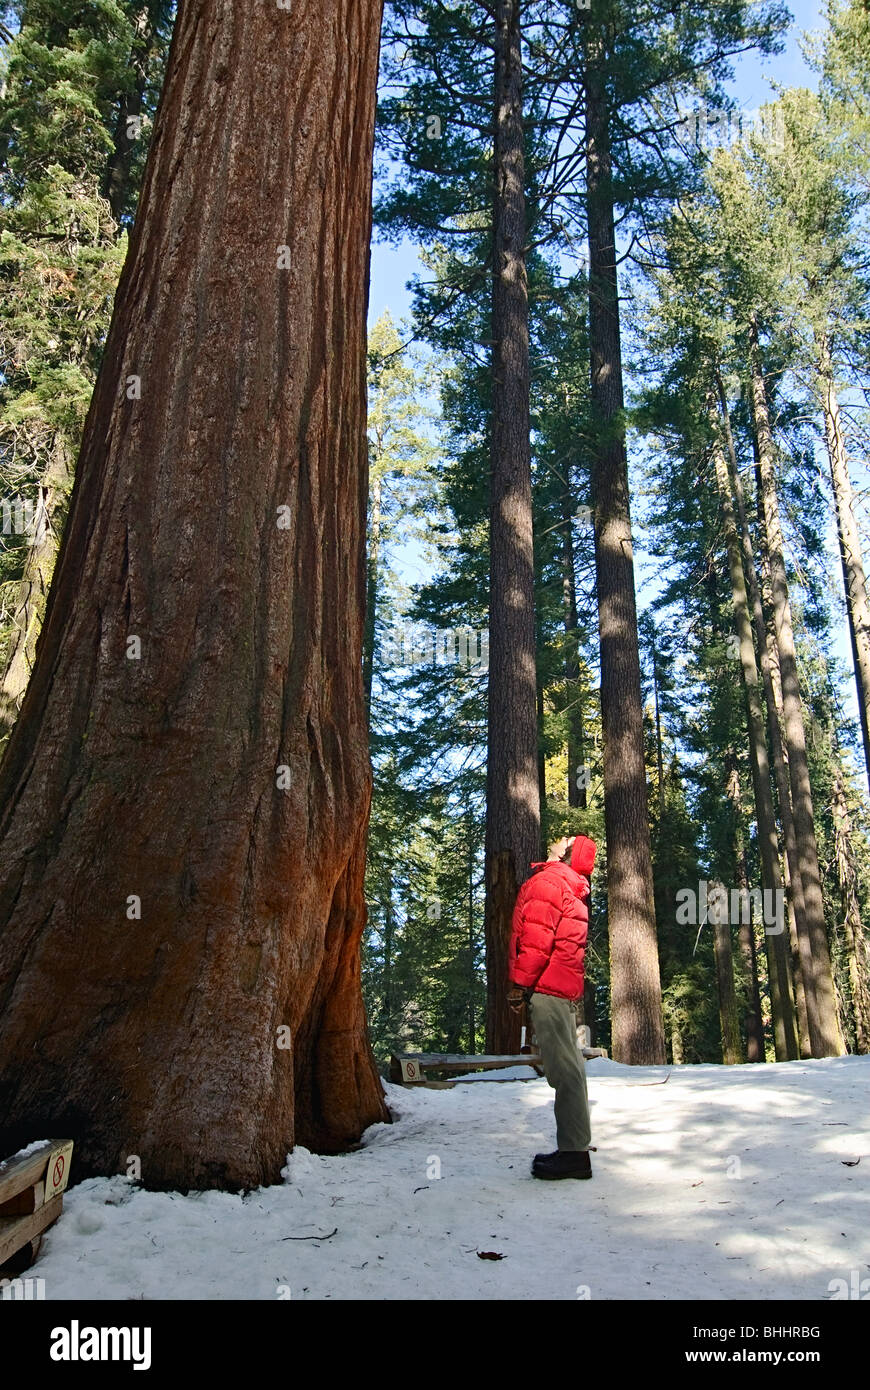 A man looking up in awe of a Giant Sequoia Tree of Tuolumne Grove in Yosemite National Park. - Stock Image